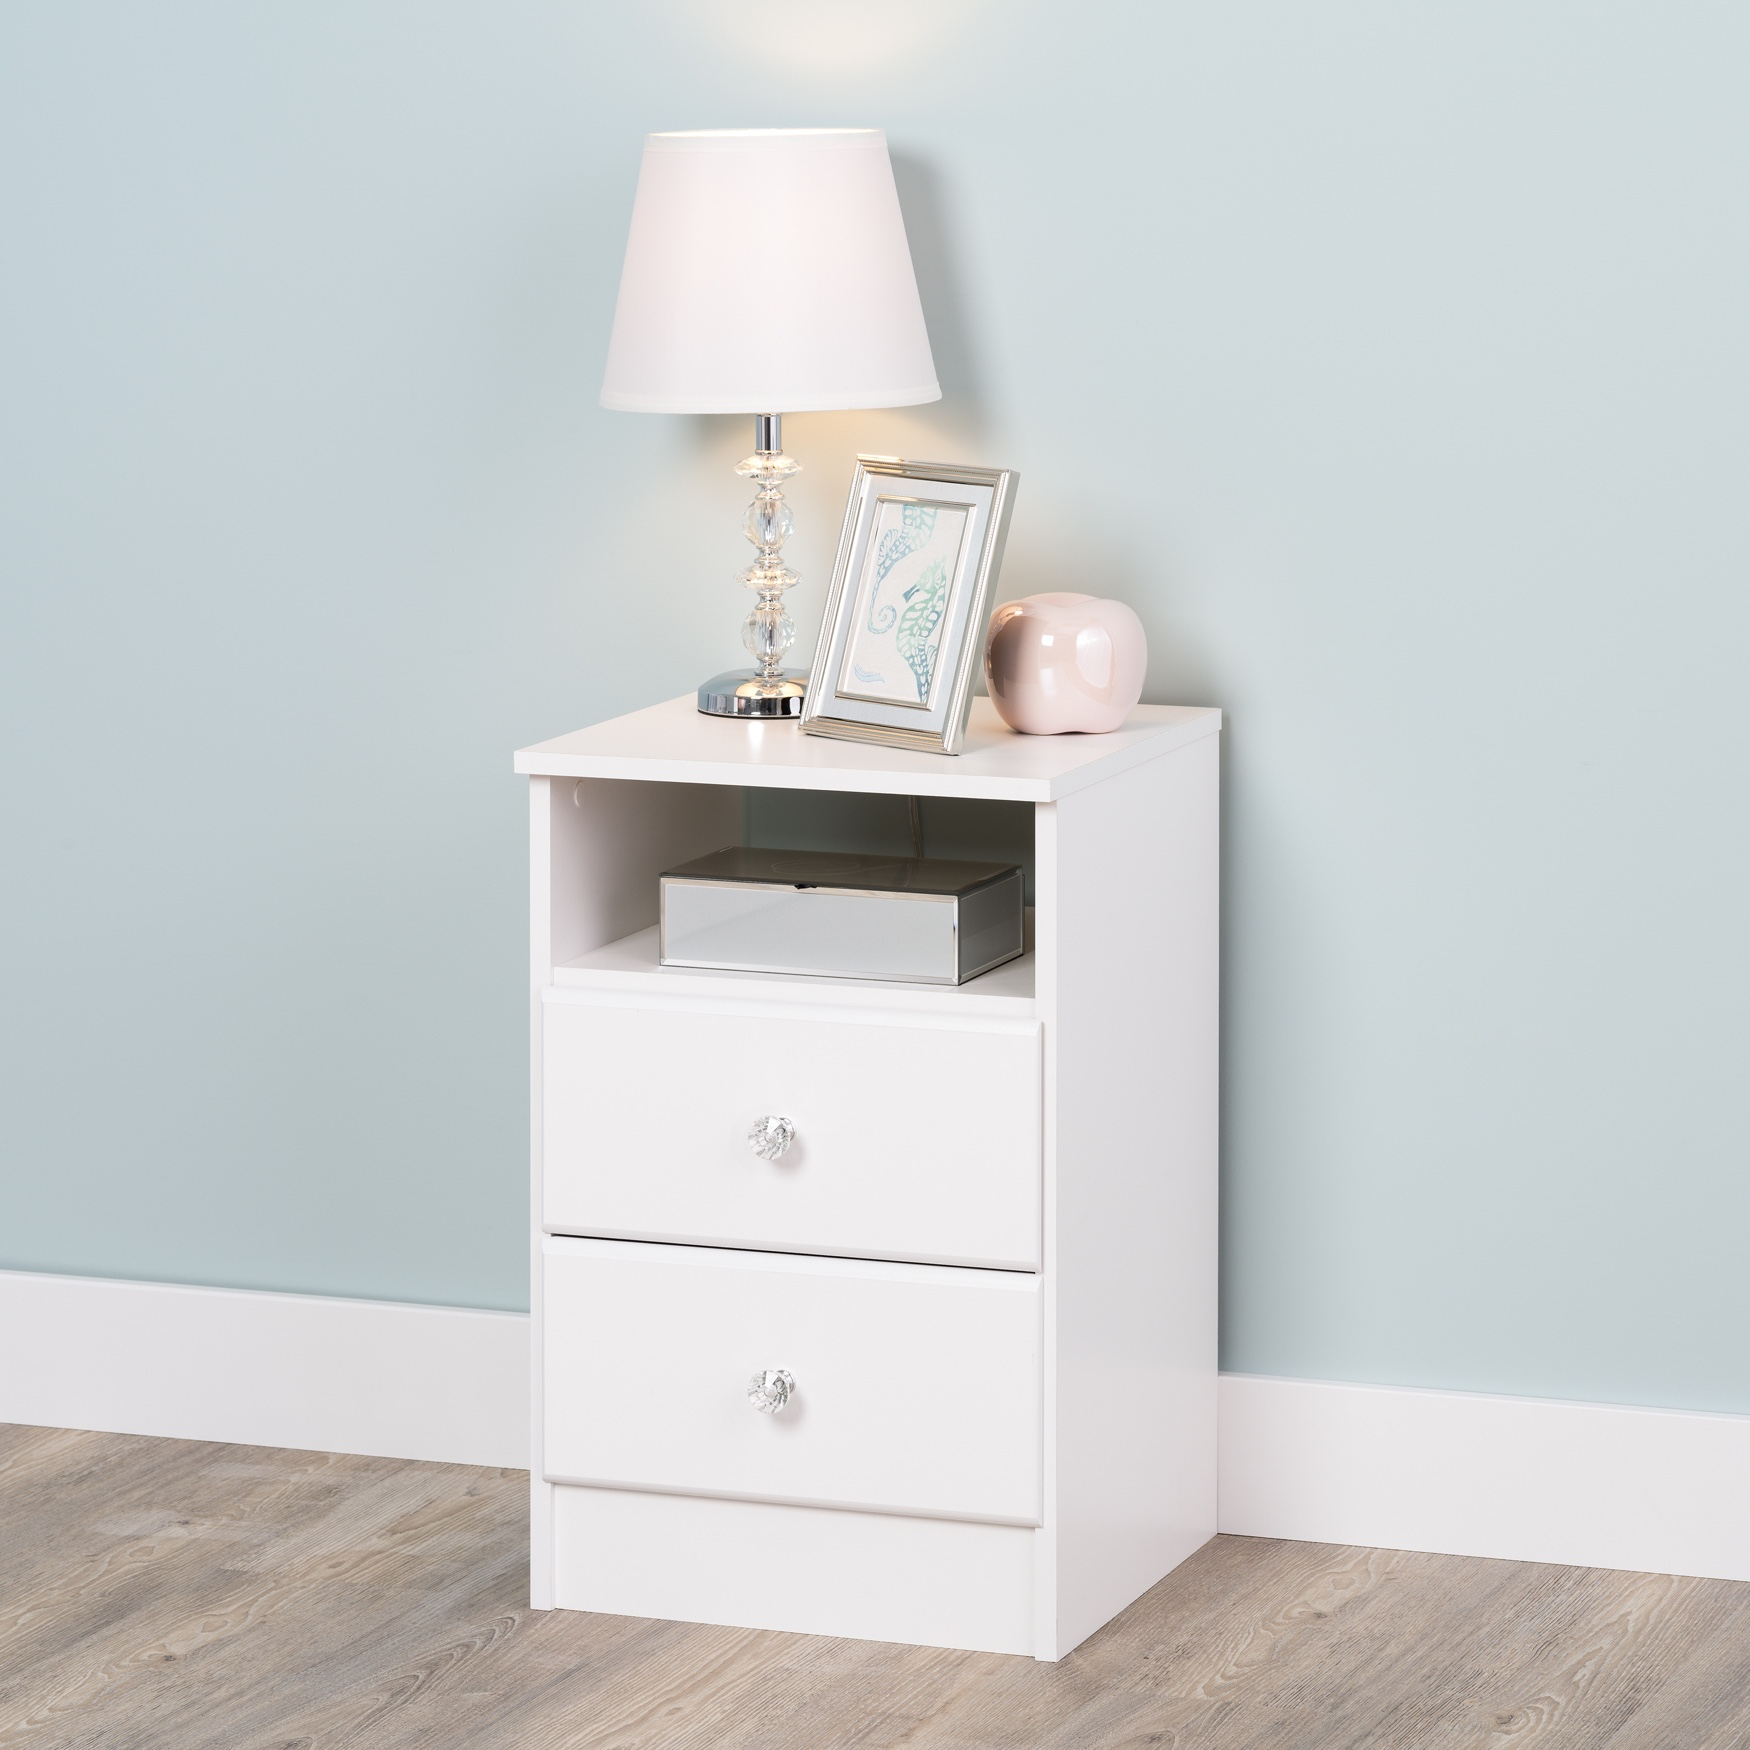 Astrid 2-Drawer Nightdstand with Acrylic Knobs, White, WHITE